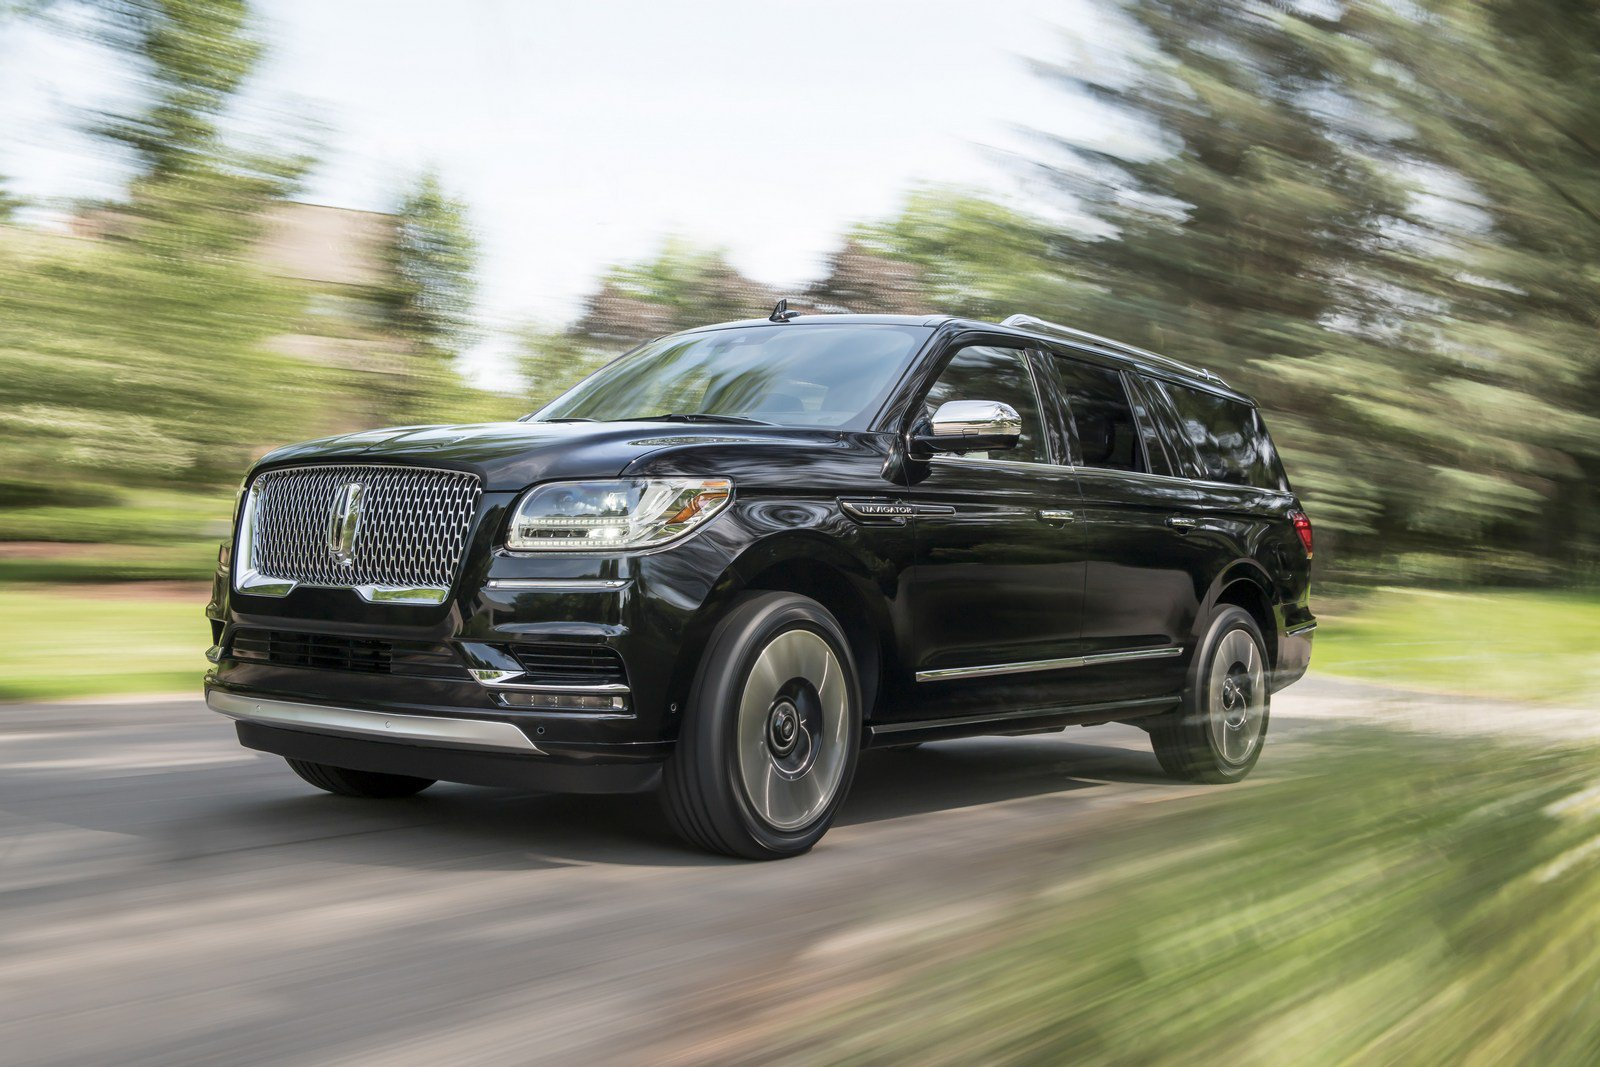 a072ddbf-lincoln-navigator-prices-3.jpg